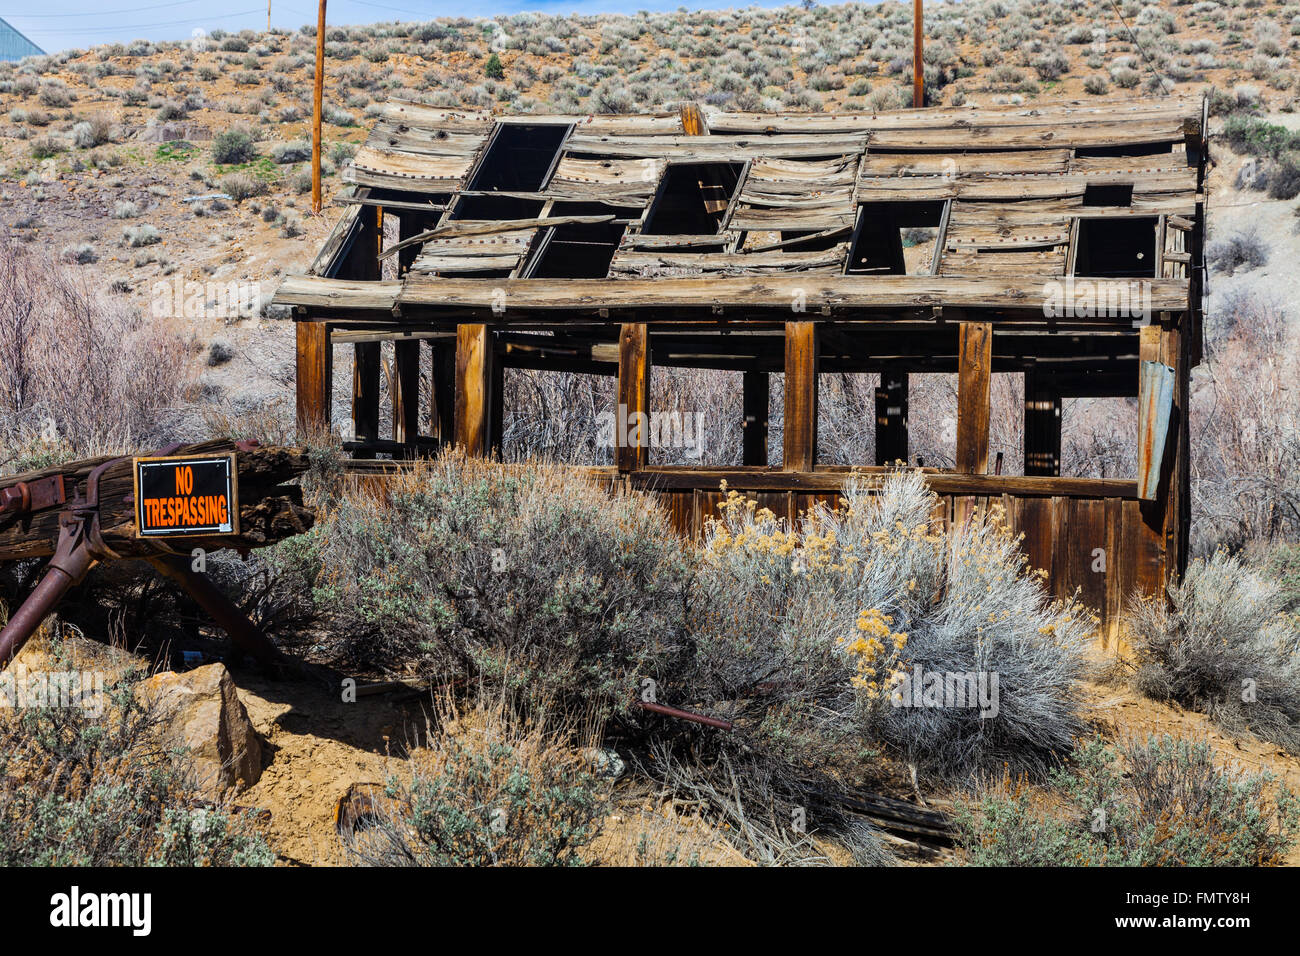 Derelict mining shack in the community of Silver City, Nevada - Stock Image